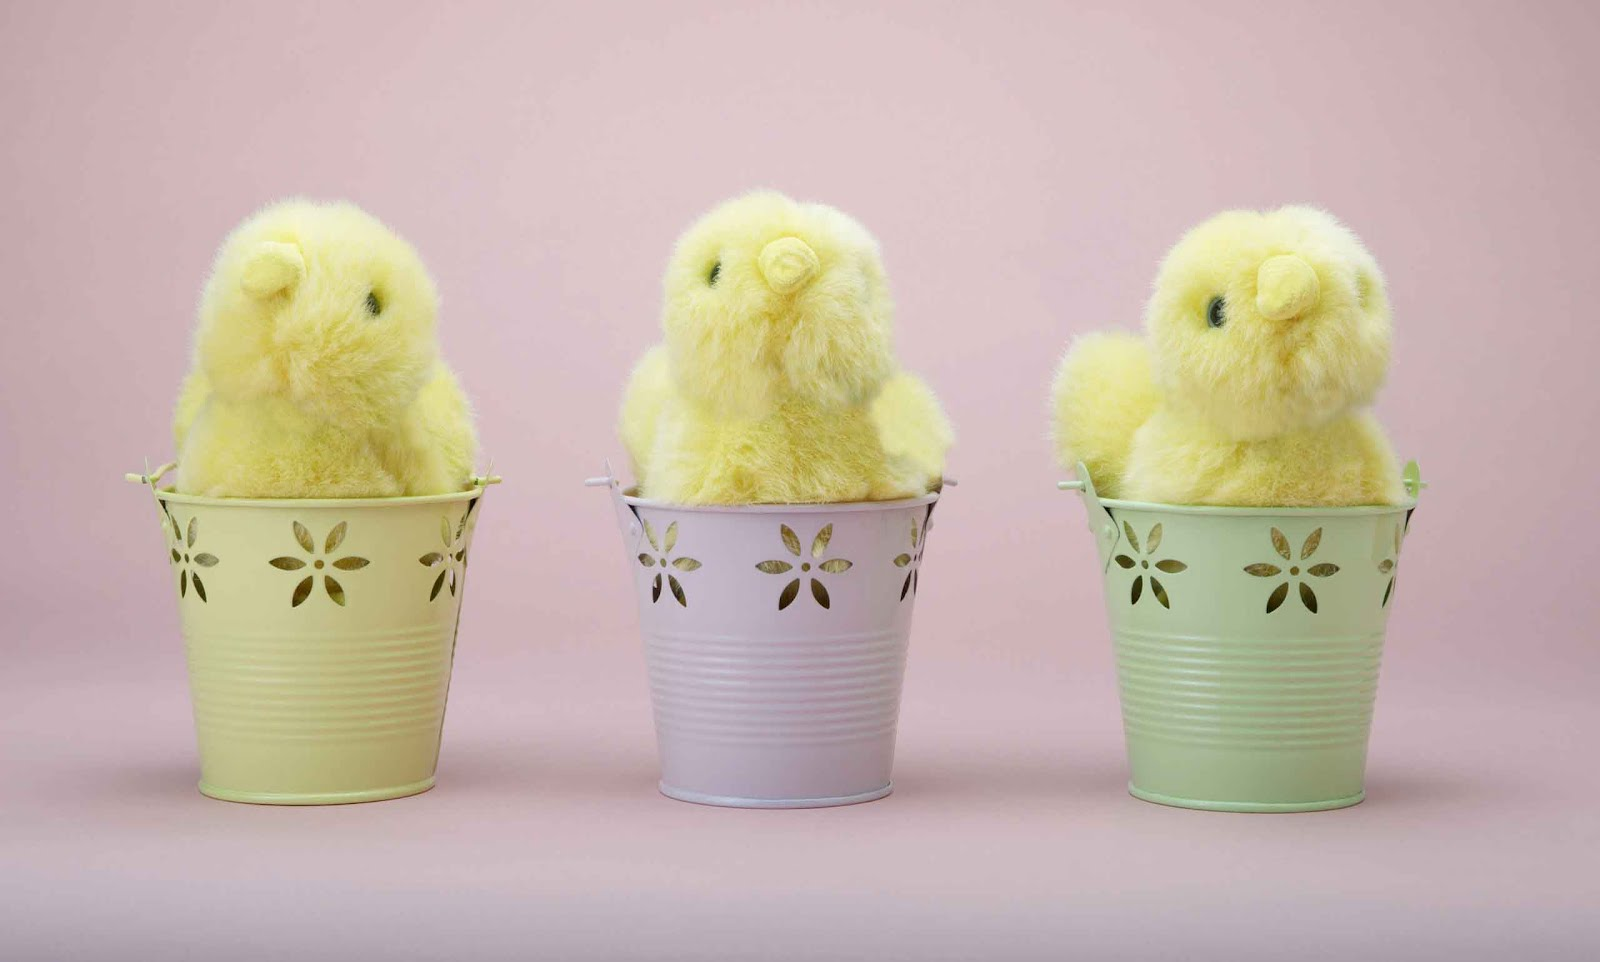 Cute Easter Chicks Wallpapers Cool Christian Wallpapers 1600x962